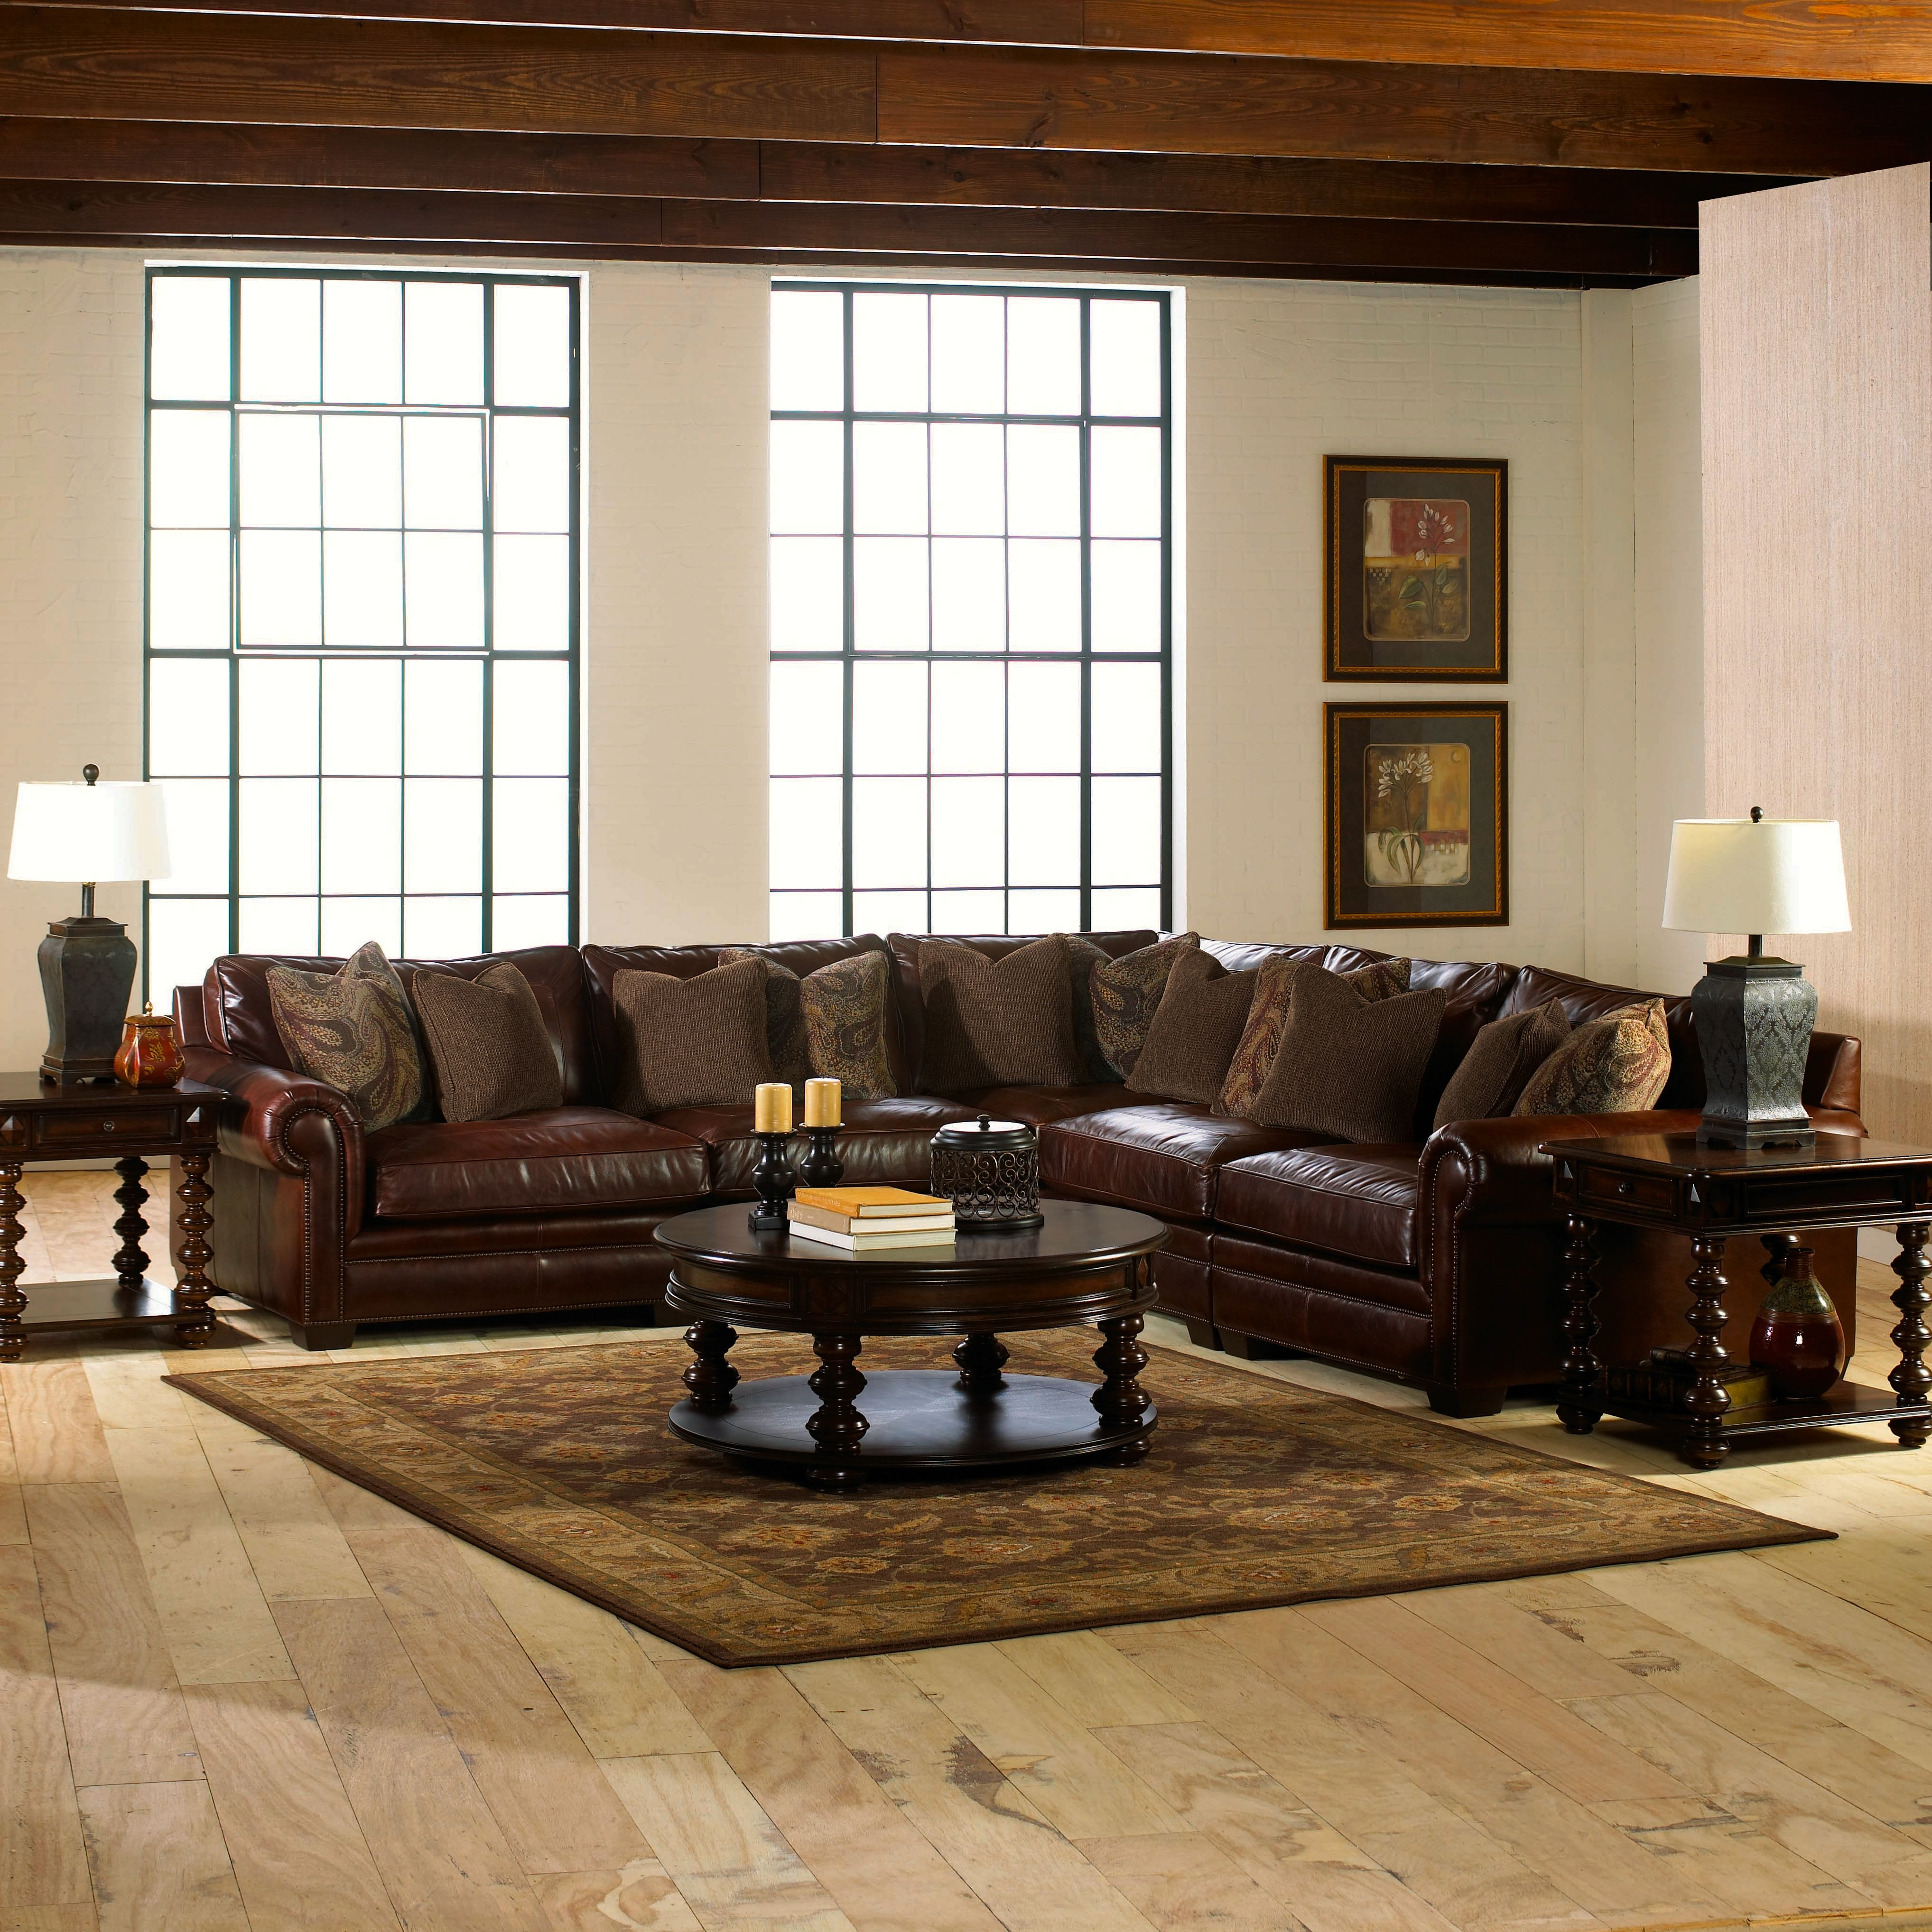 Swann's Furniture   Living room leather, Leather living room set ...